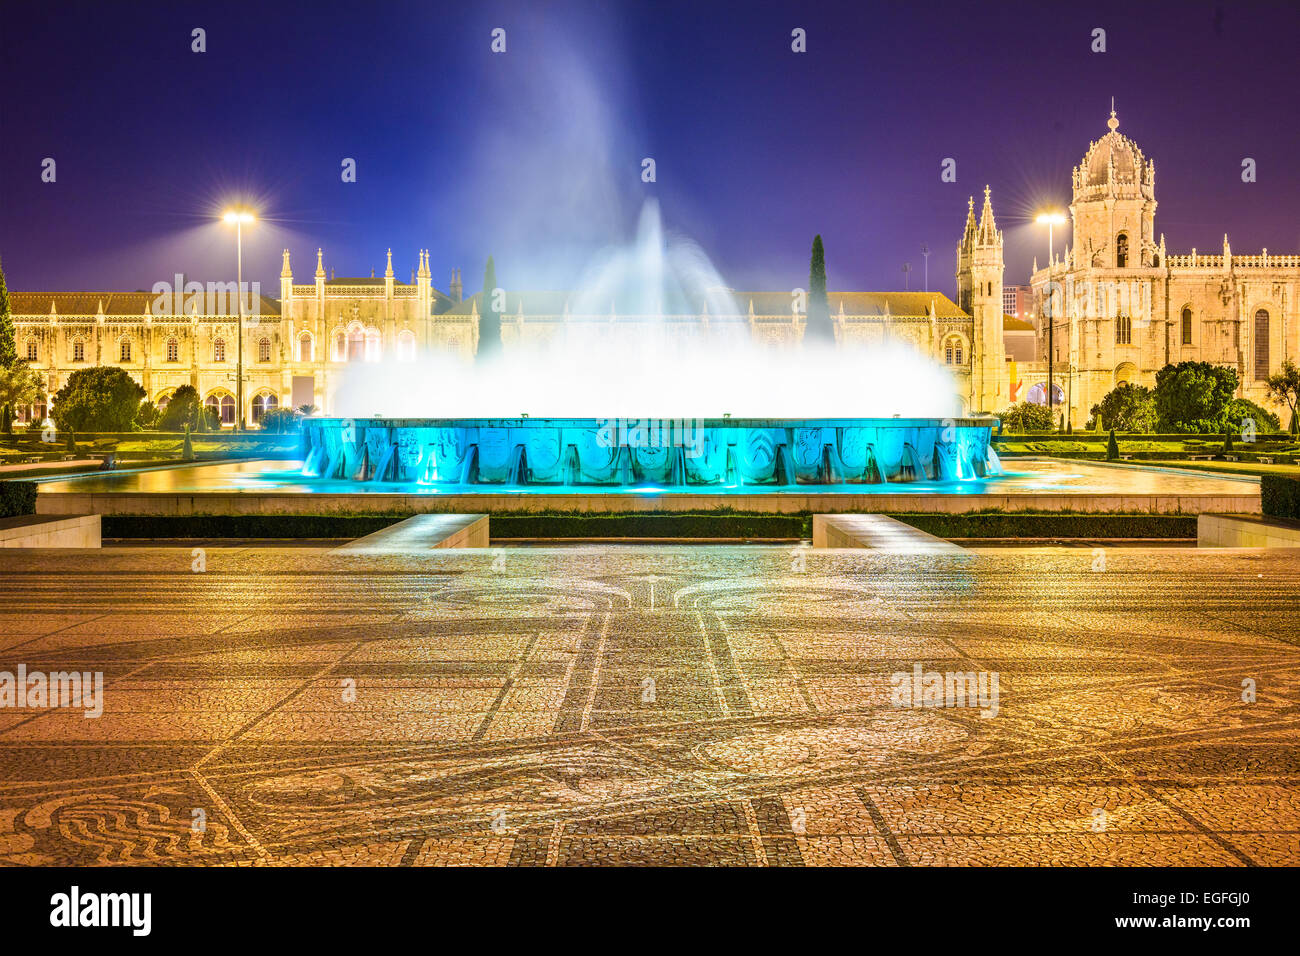 Belem, Lisbon, Portugal at the Jeronimos Monastery fountain at night. Stock Photo